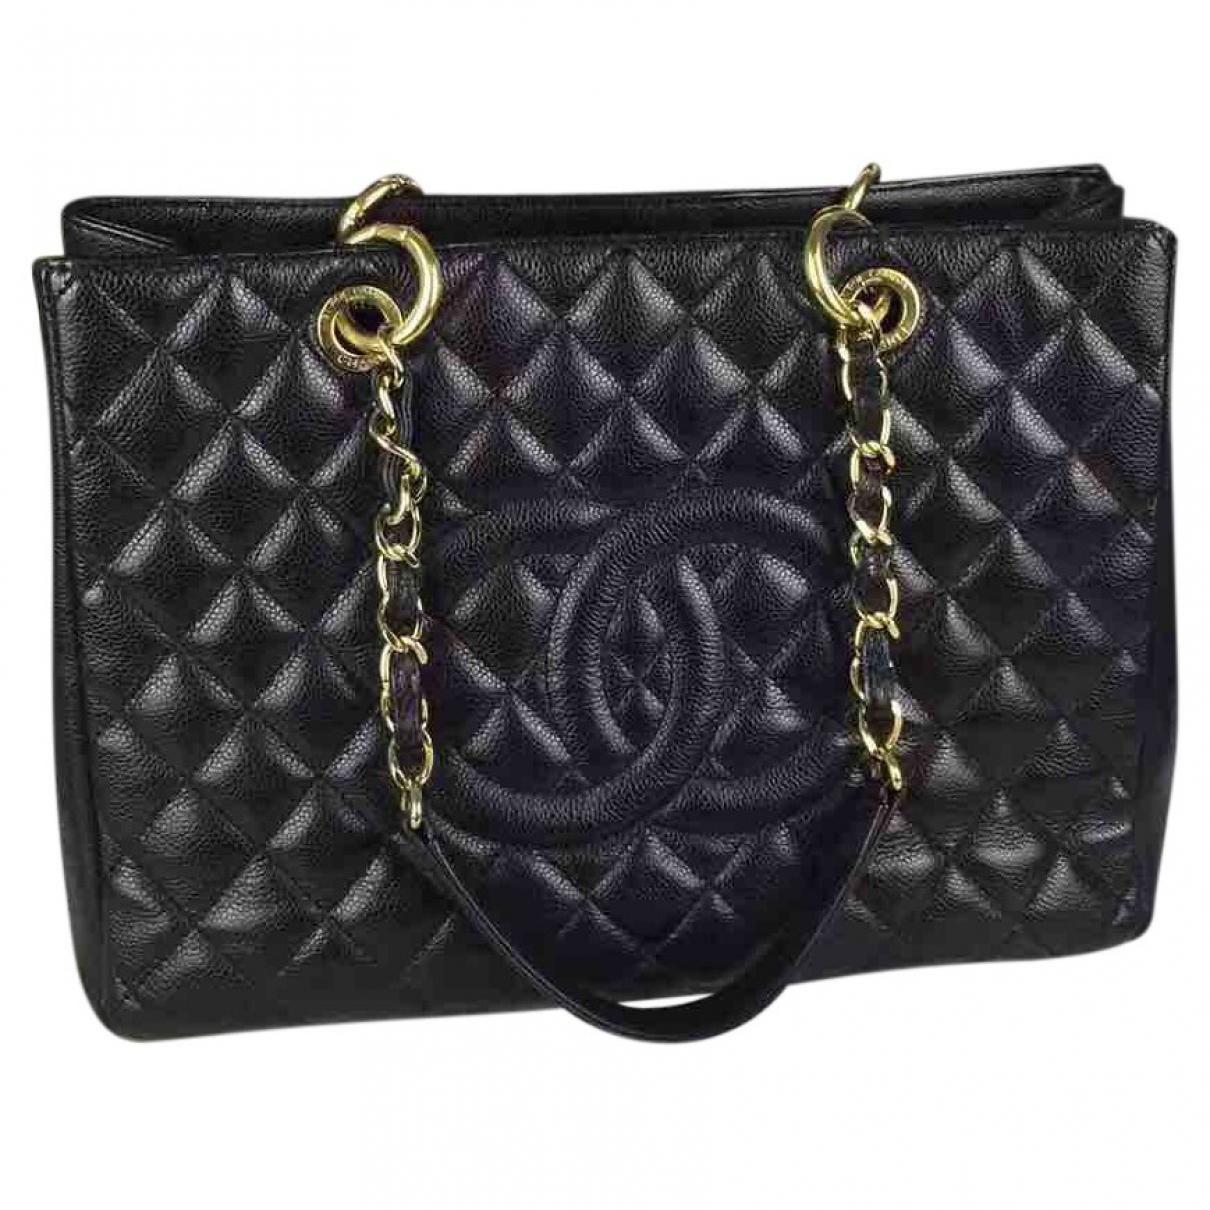 Pre-owned - Grand shopping leather handbag Chanel XiS7LBh0